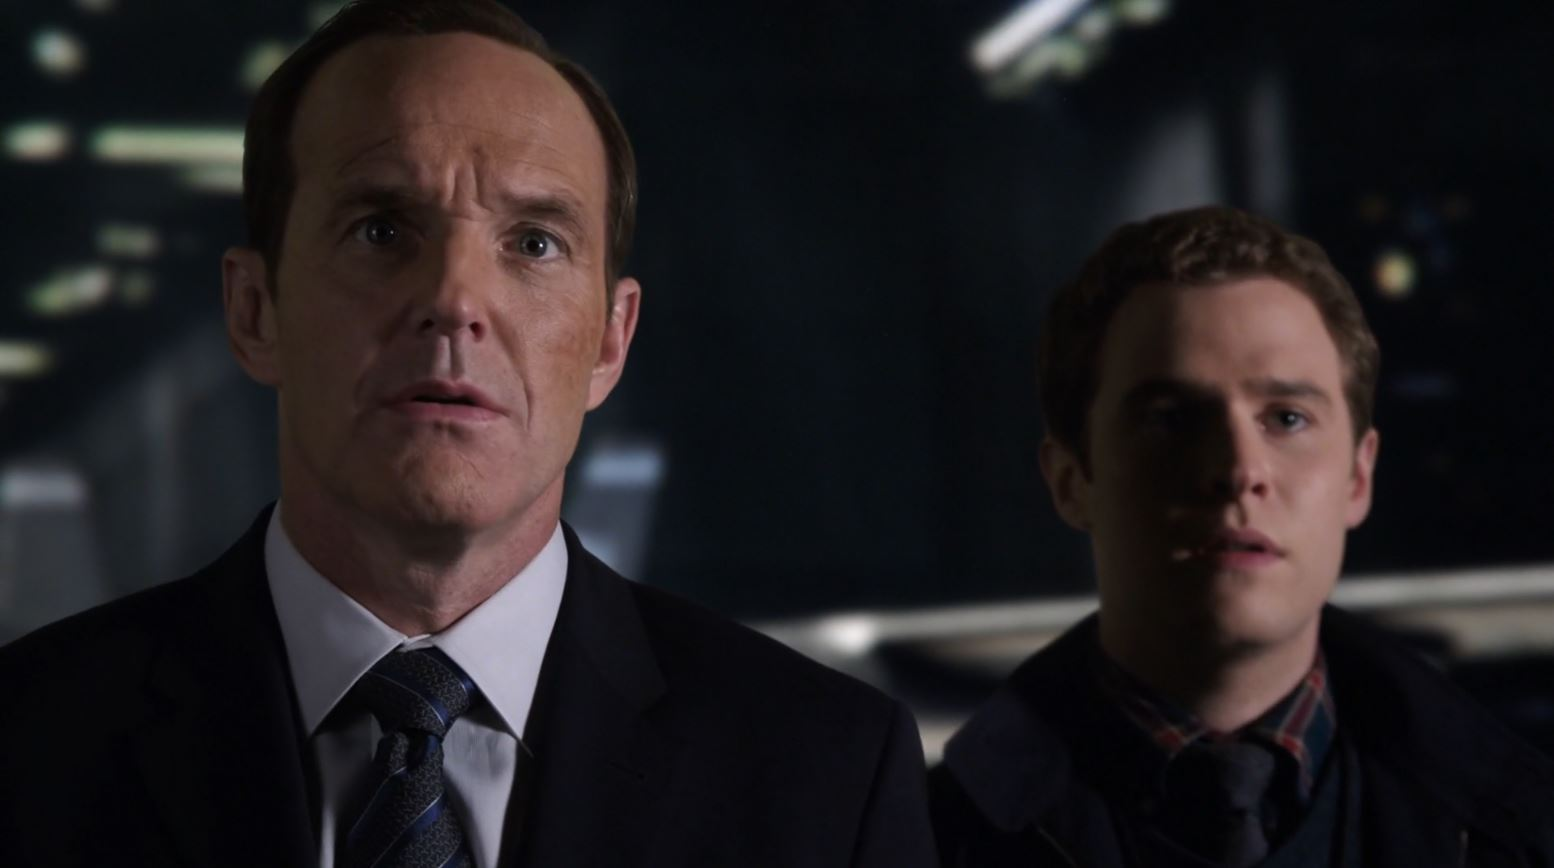 Agents of SHIELD - 'The Only Light in the Darkness' - Phil Coulson finds Providence abandoned